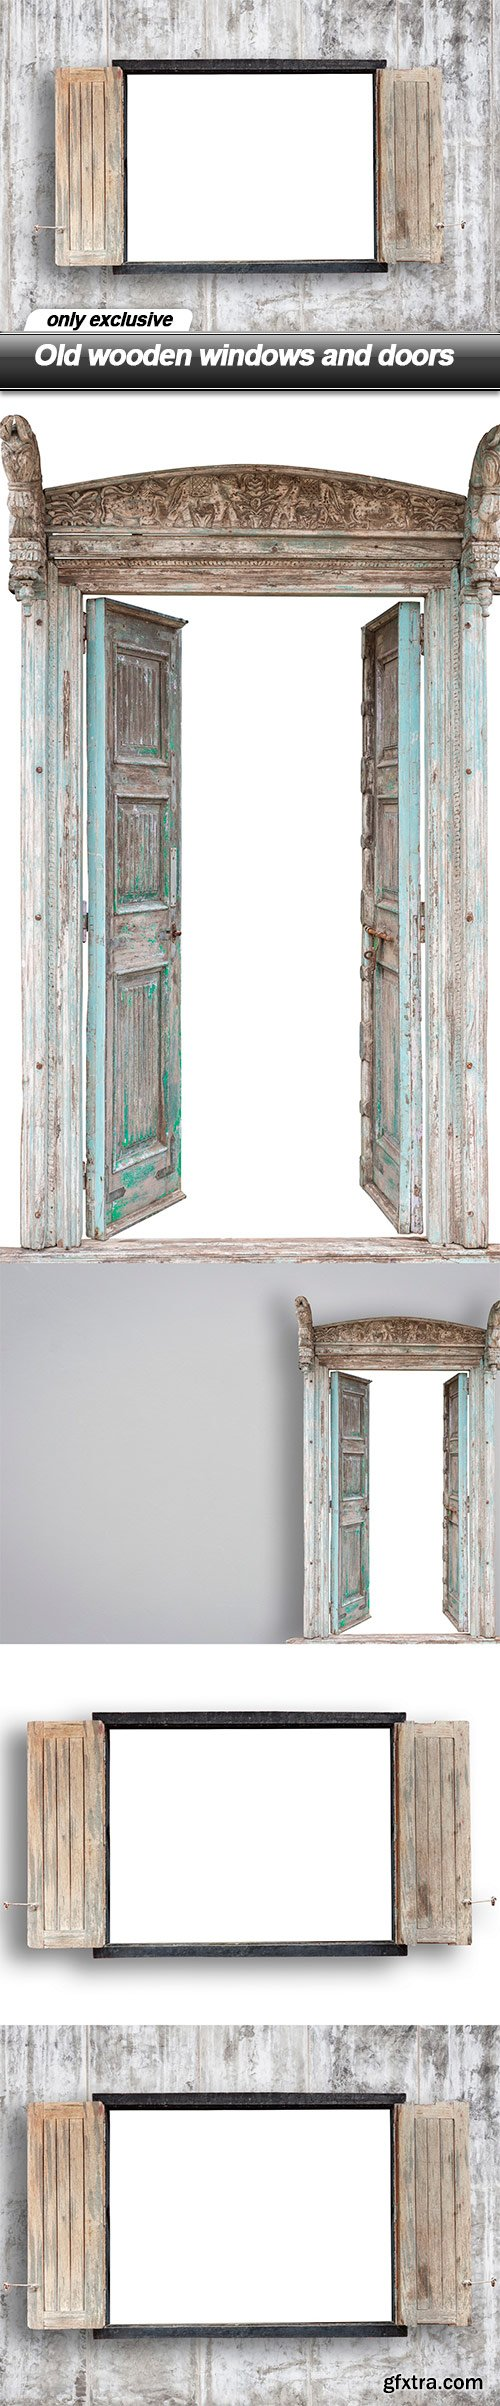 Old wooden windows and doors - 4 UHQ JPEG